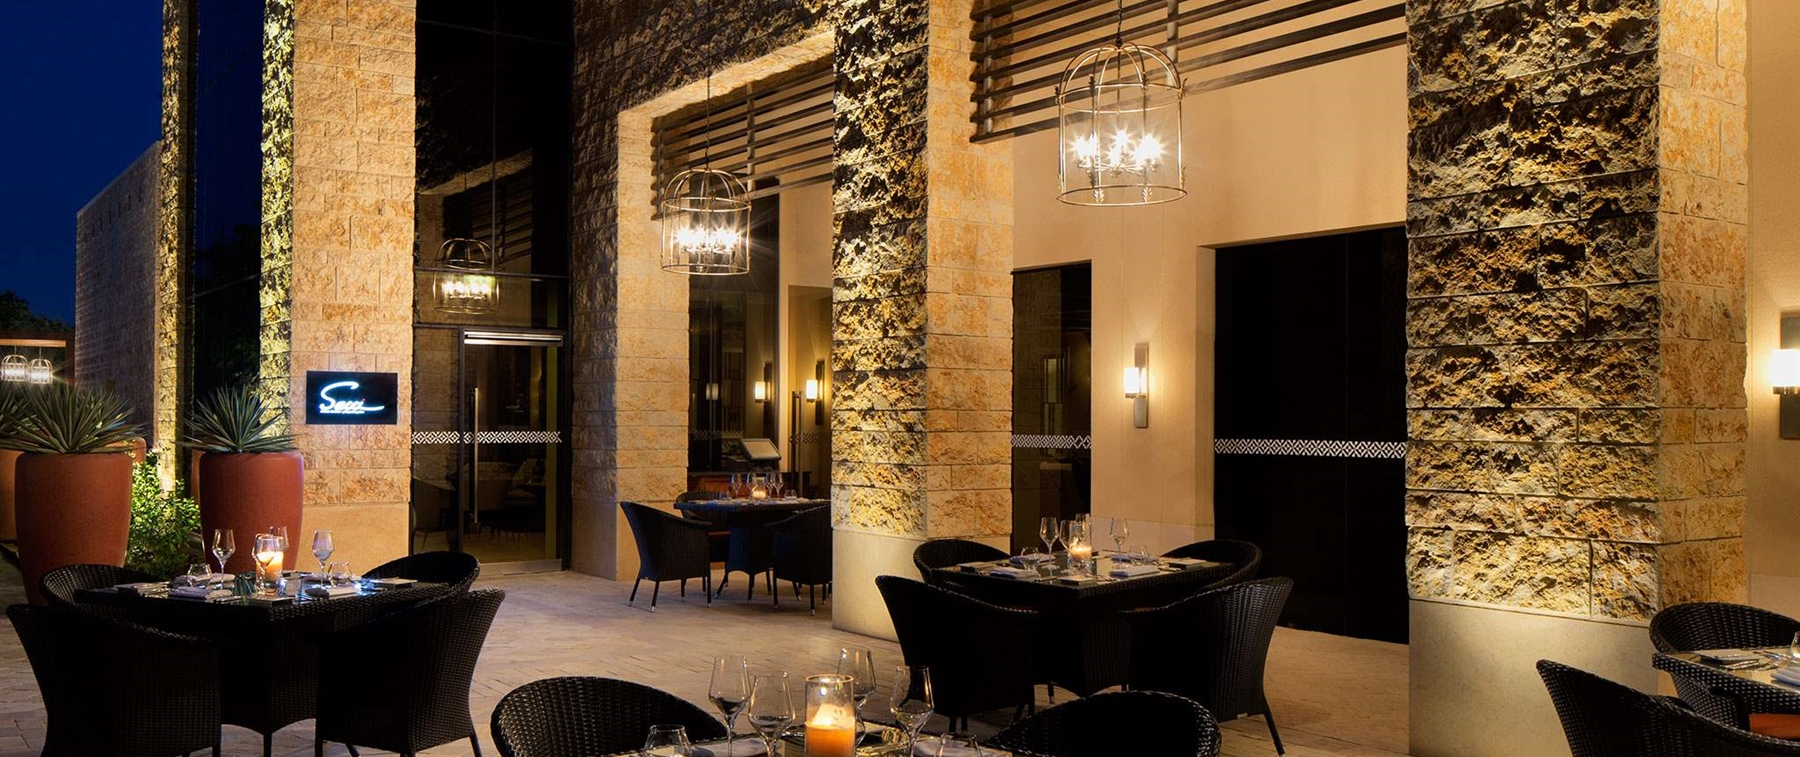 living room restaurant abu dhabi decorating ideas for small rooms on a budget sacci italian i westin golf resort spa site map